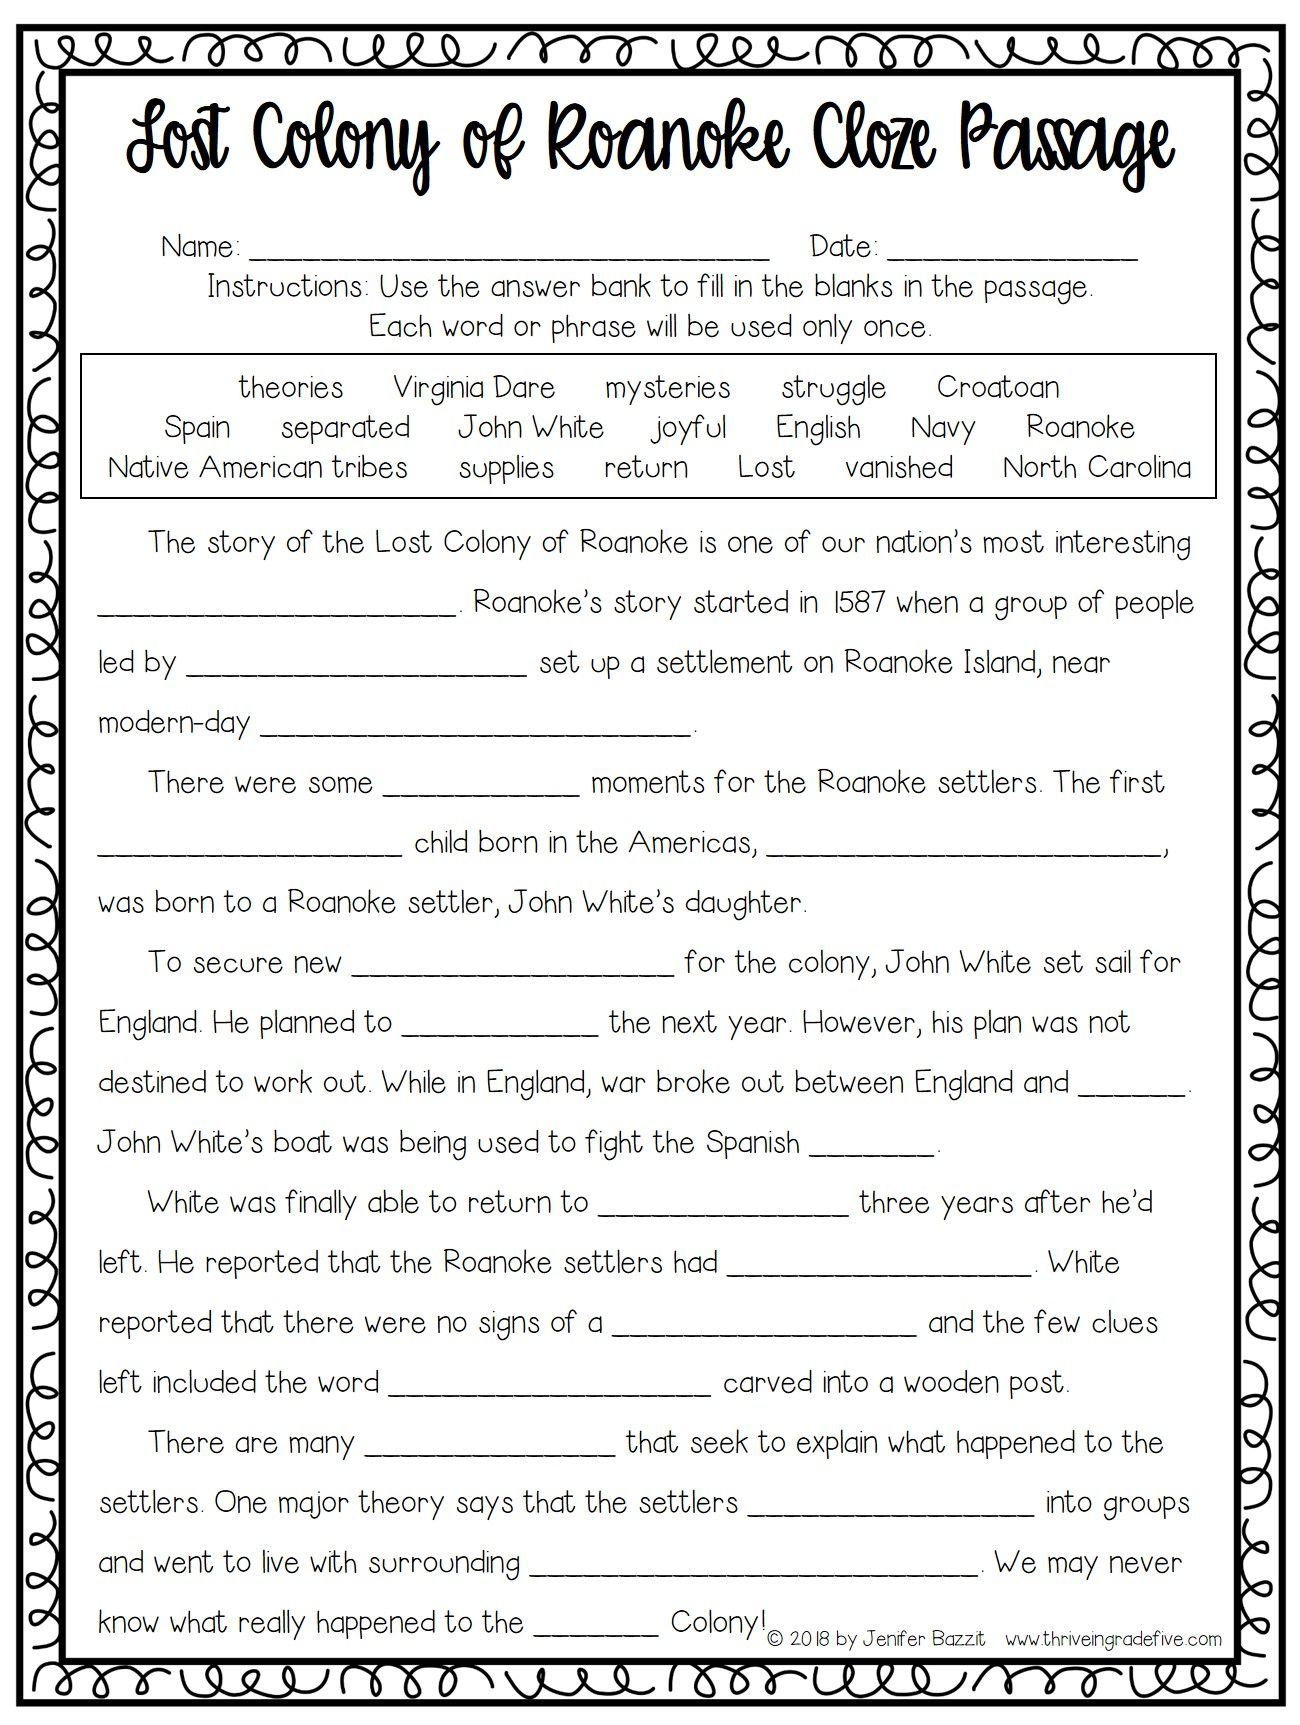 hight resolution of Lost Colony of Roanoke activity - FREE!   History worksheets